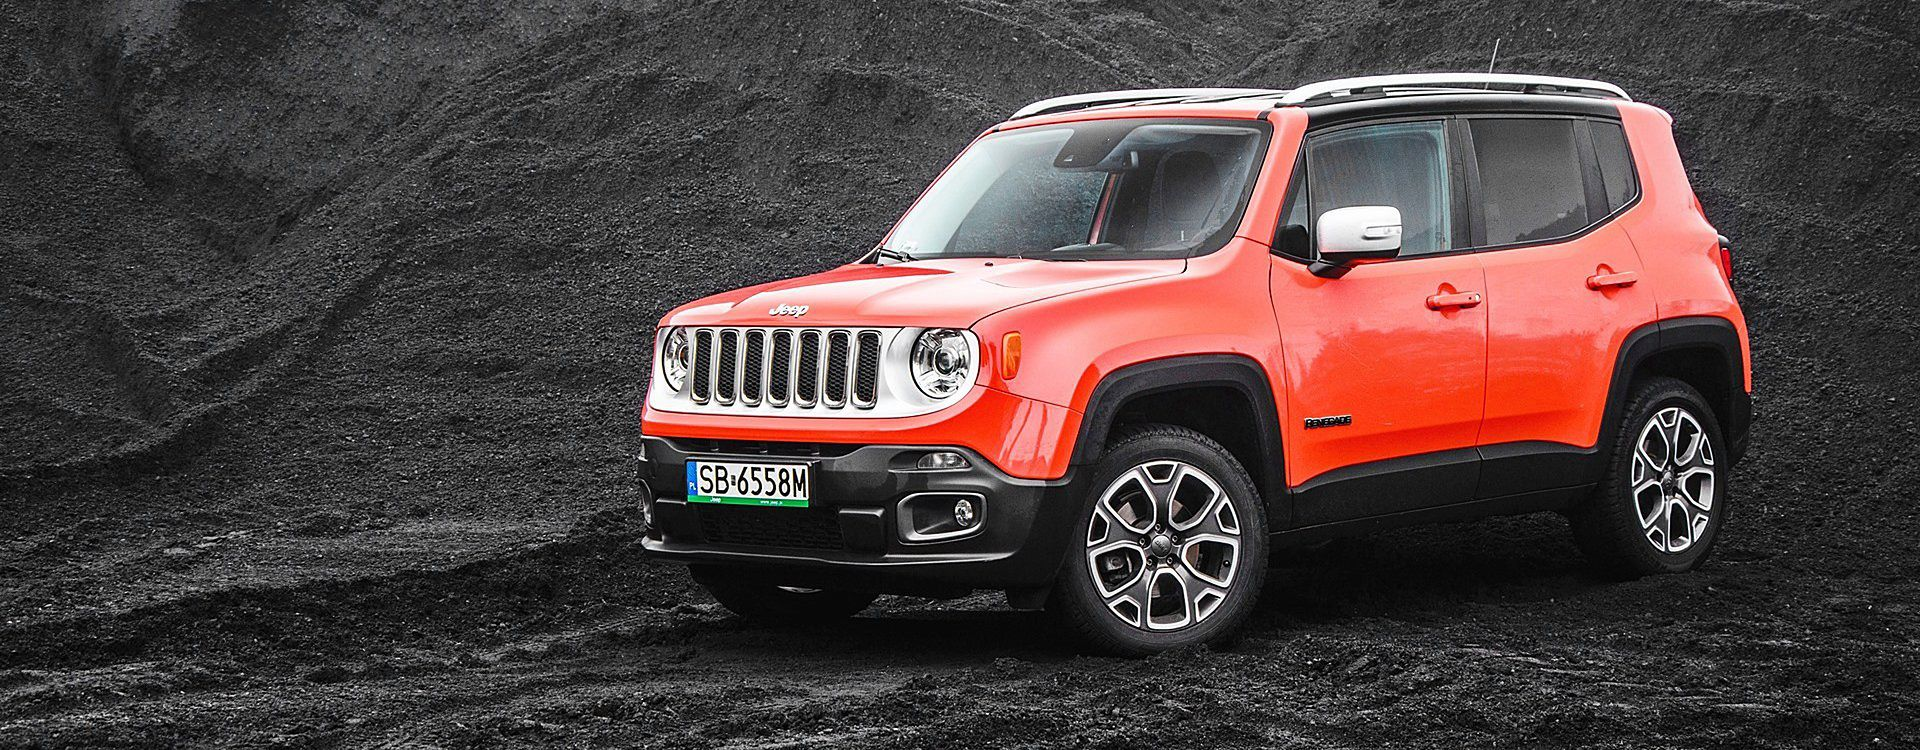 jeep renegade limited 2 0 multijet 140 km awd test. Black Bedroom Furniture Sets. Home Design Ideas